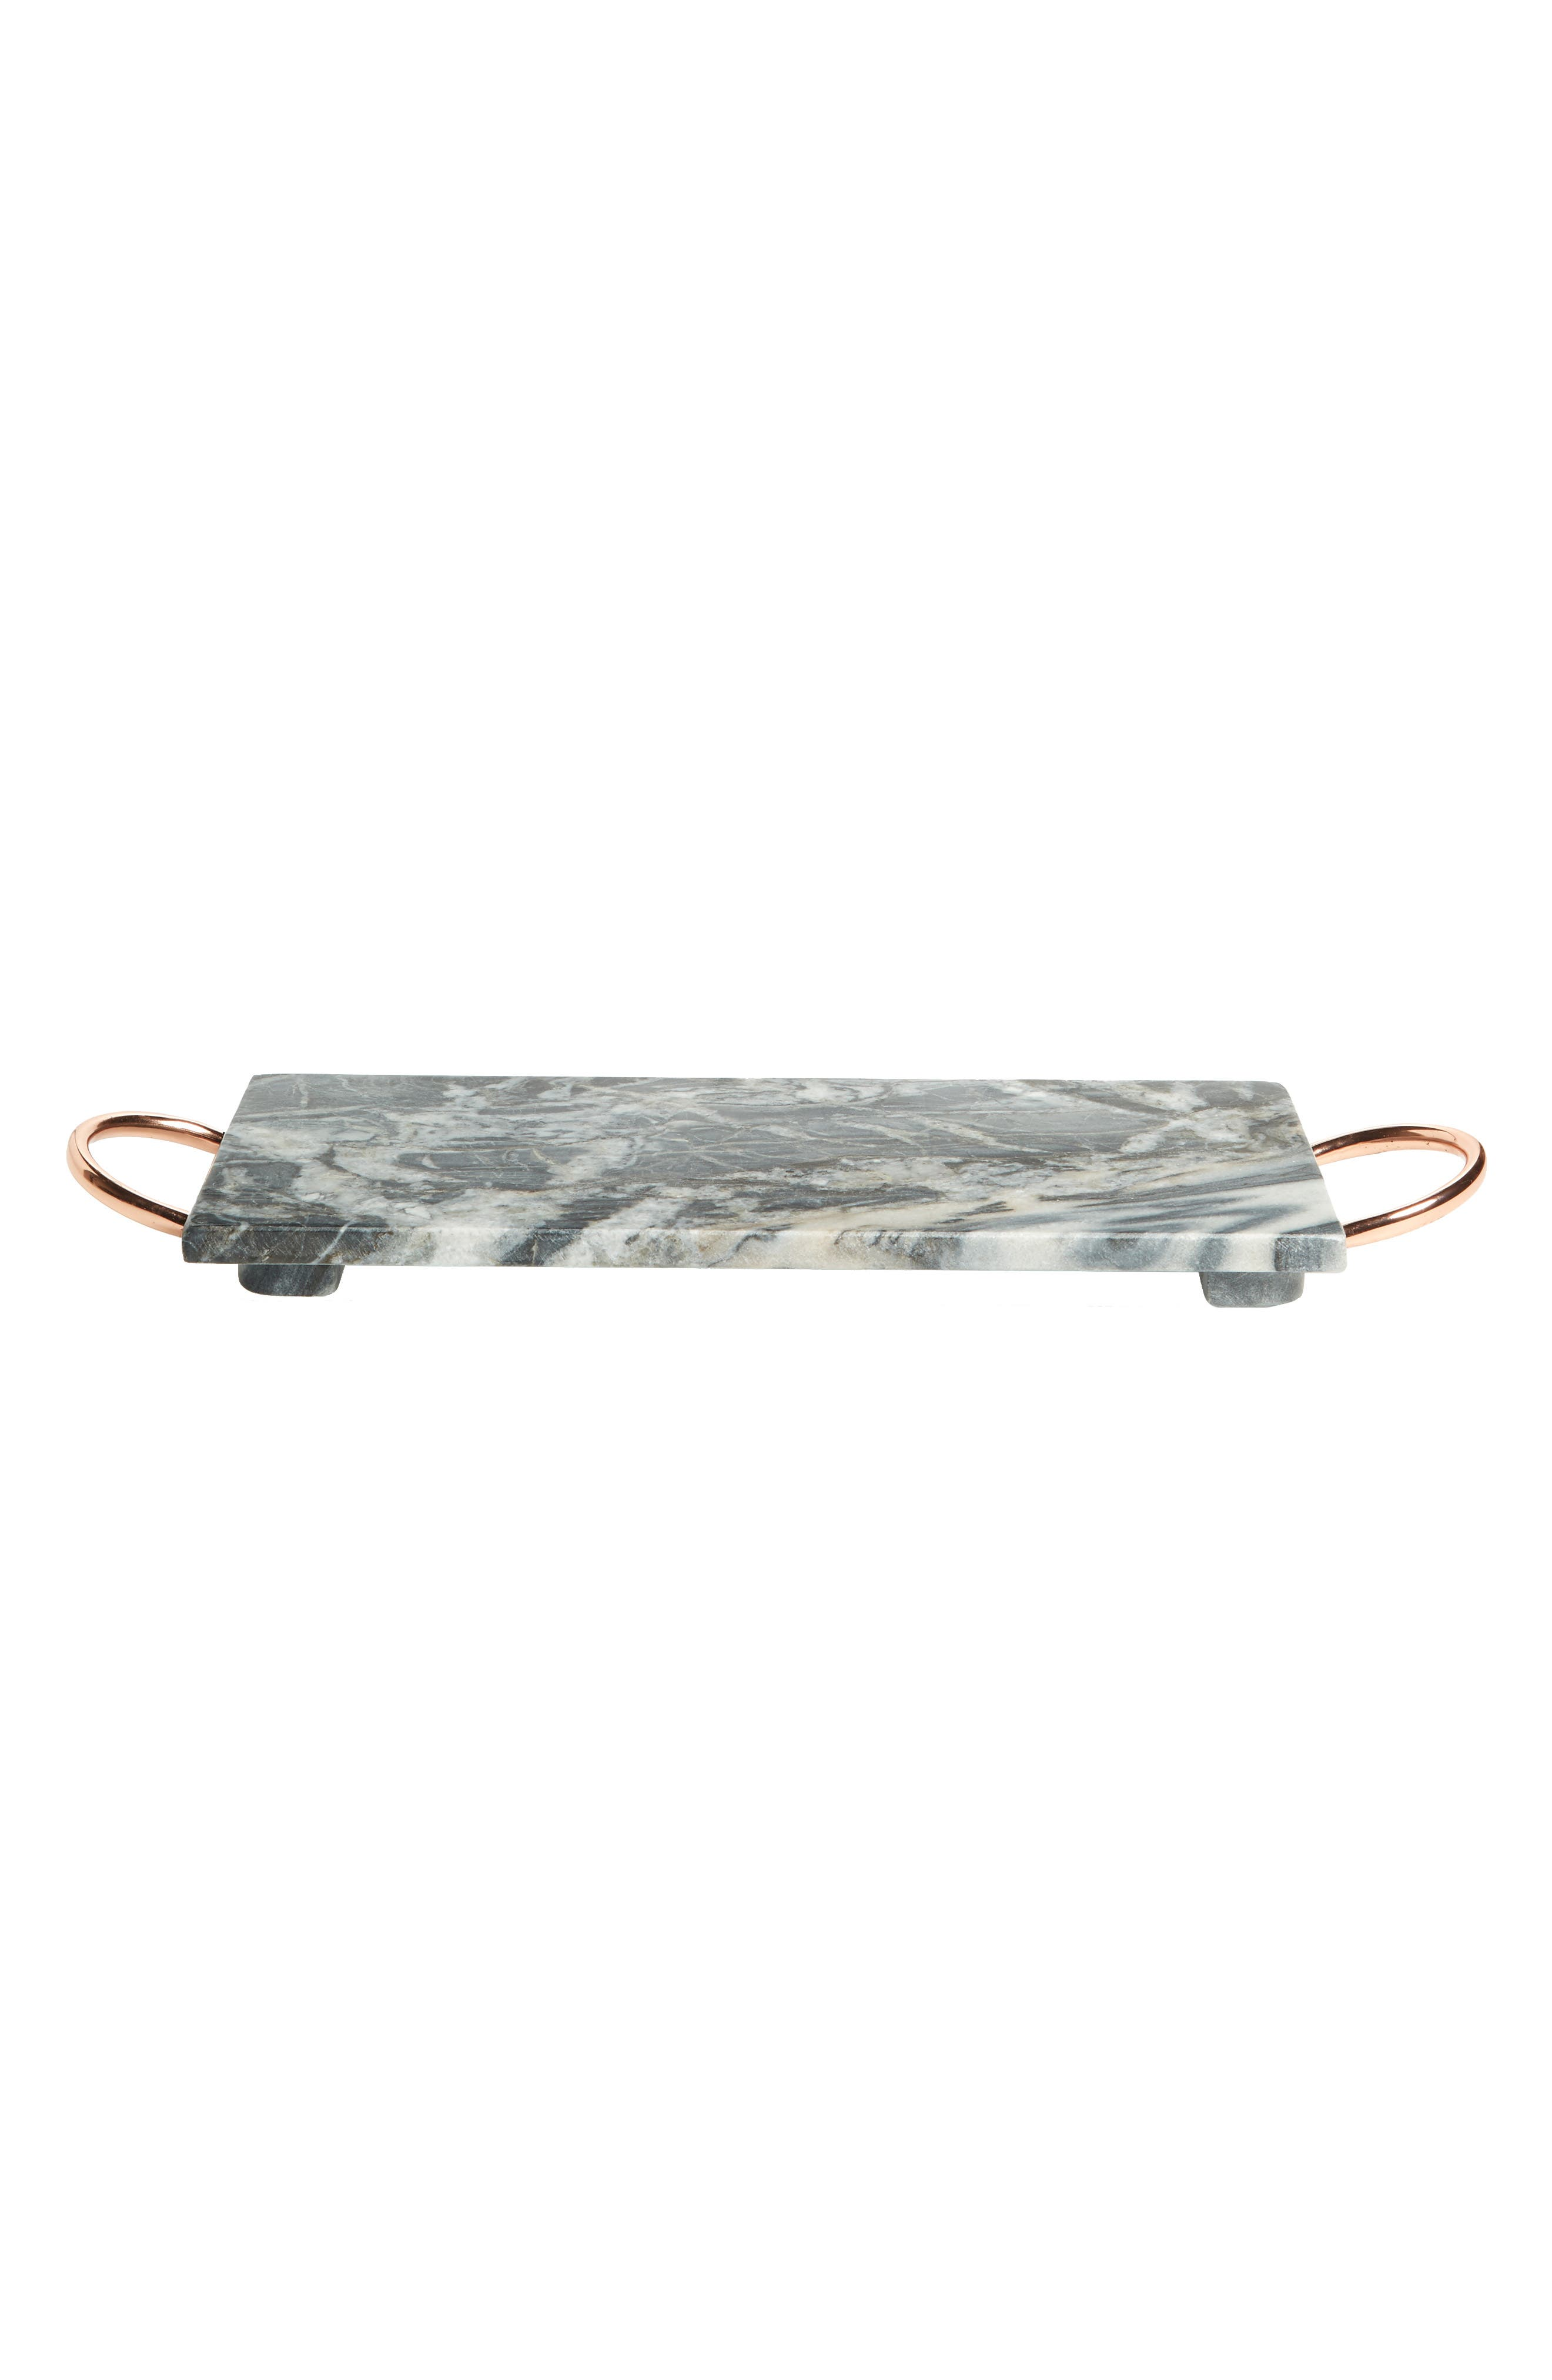 Marble Serving Tray,                             Main thumbnail 1, color,                             Black Multi